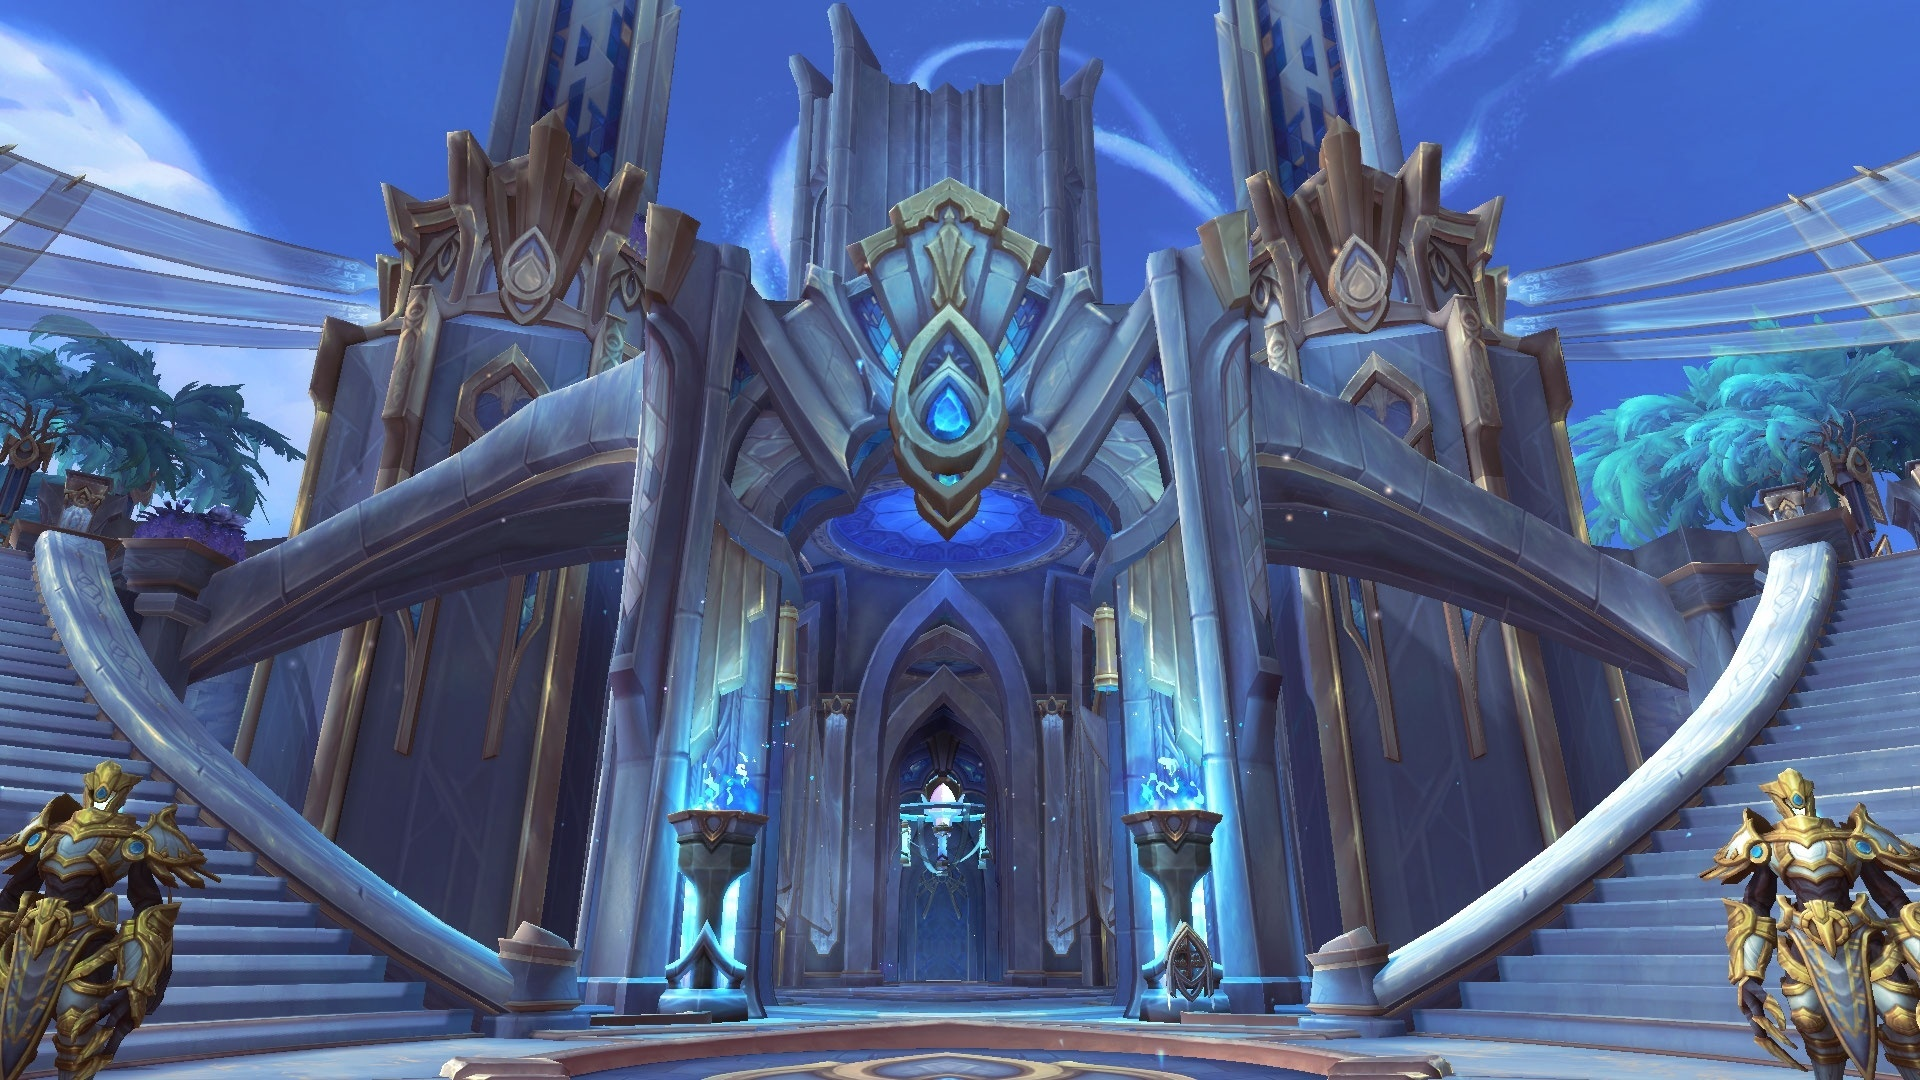 Entering a Covenant Sanctum While Not Part of That Covenant Gets You Kicked  Out - Noticias de Wowhead